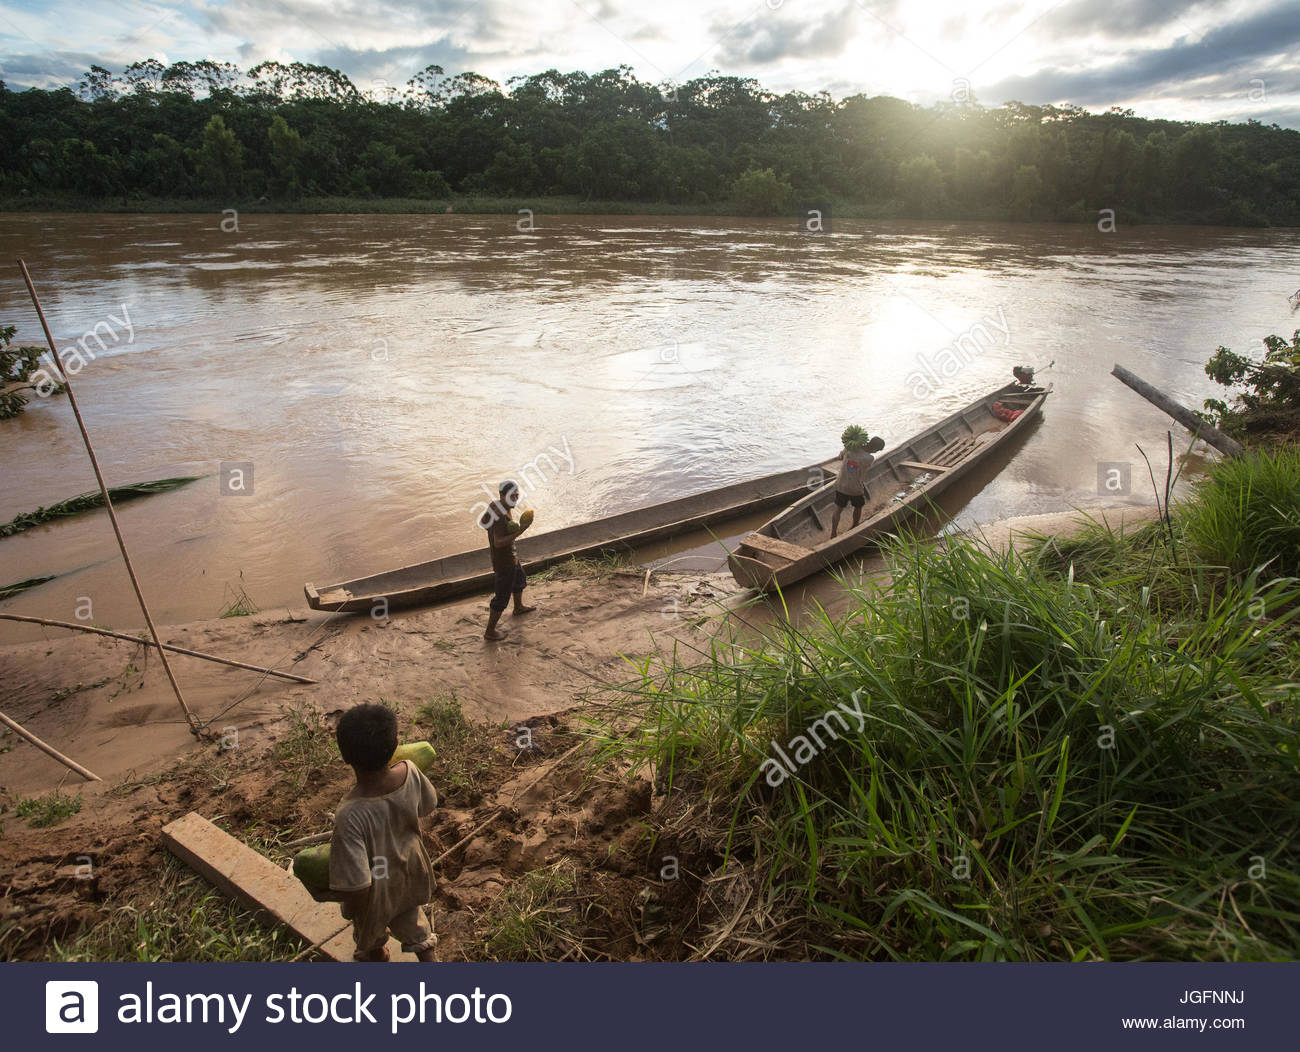 Tsimane people approach a canoe to transport goods on the Maniqui River, near Anachere, in the Amazon rainforest, - Stock Image